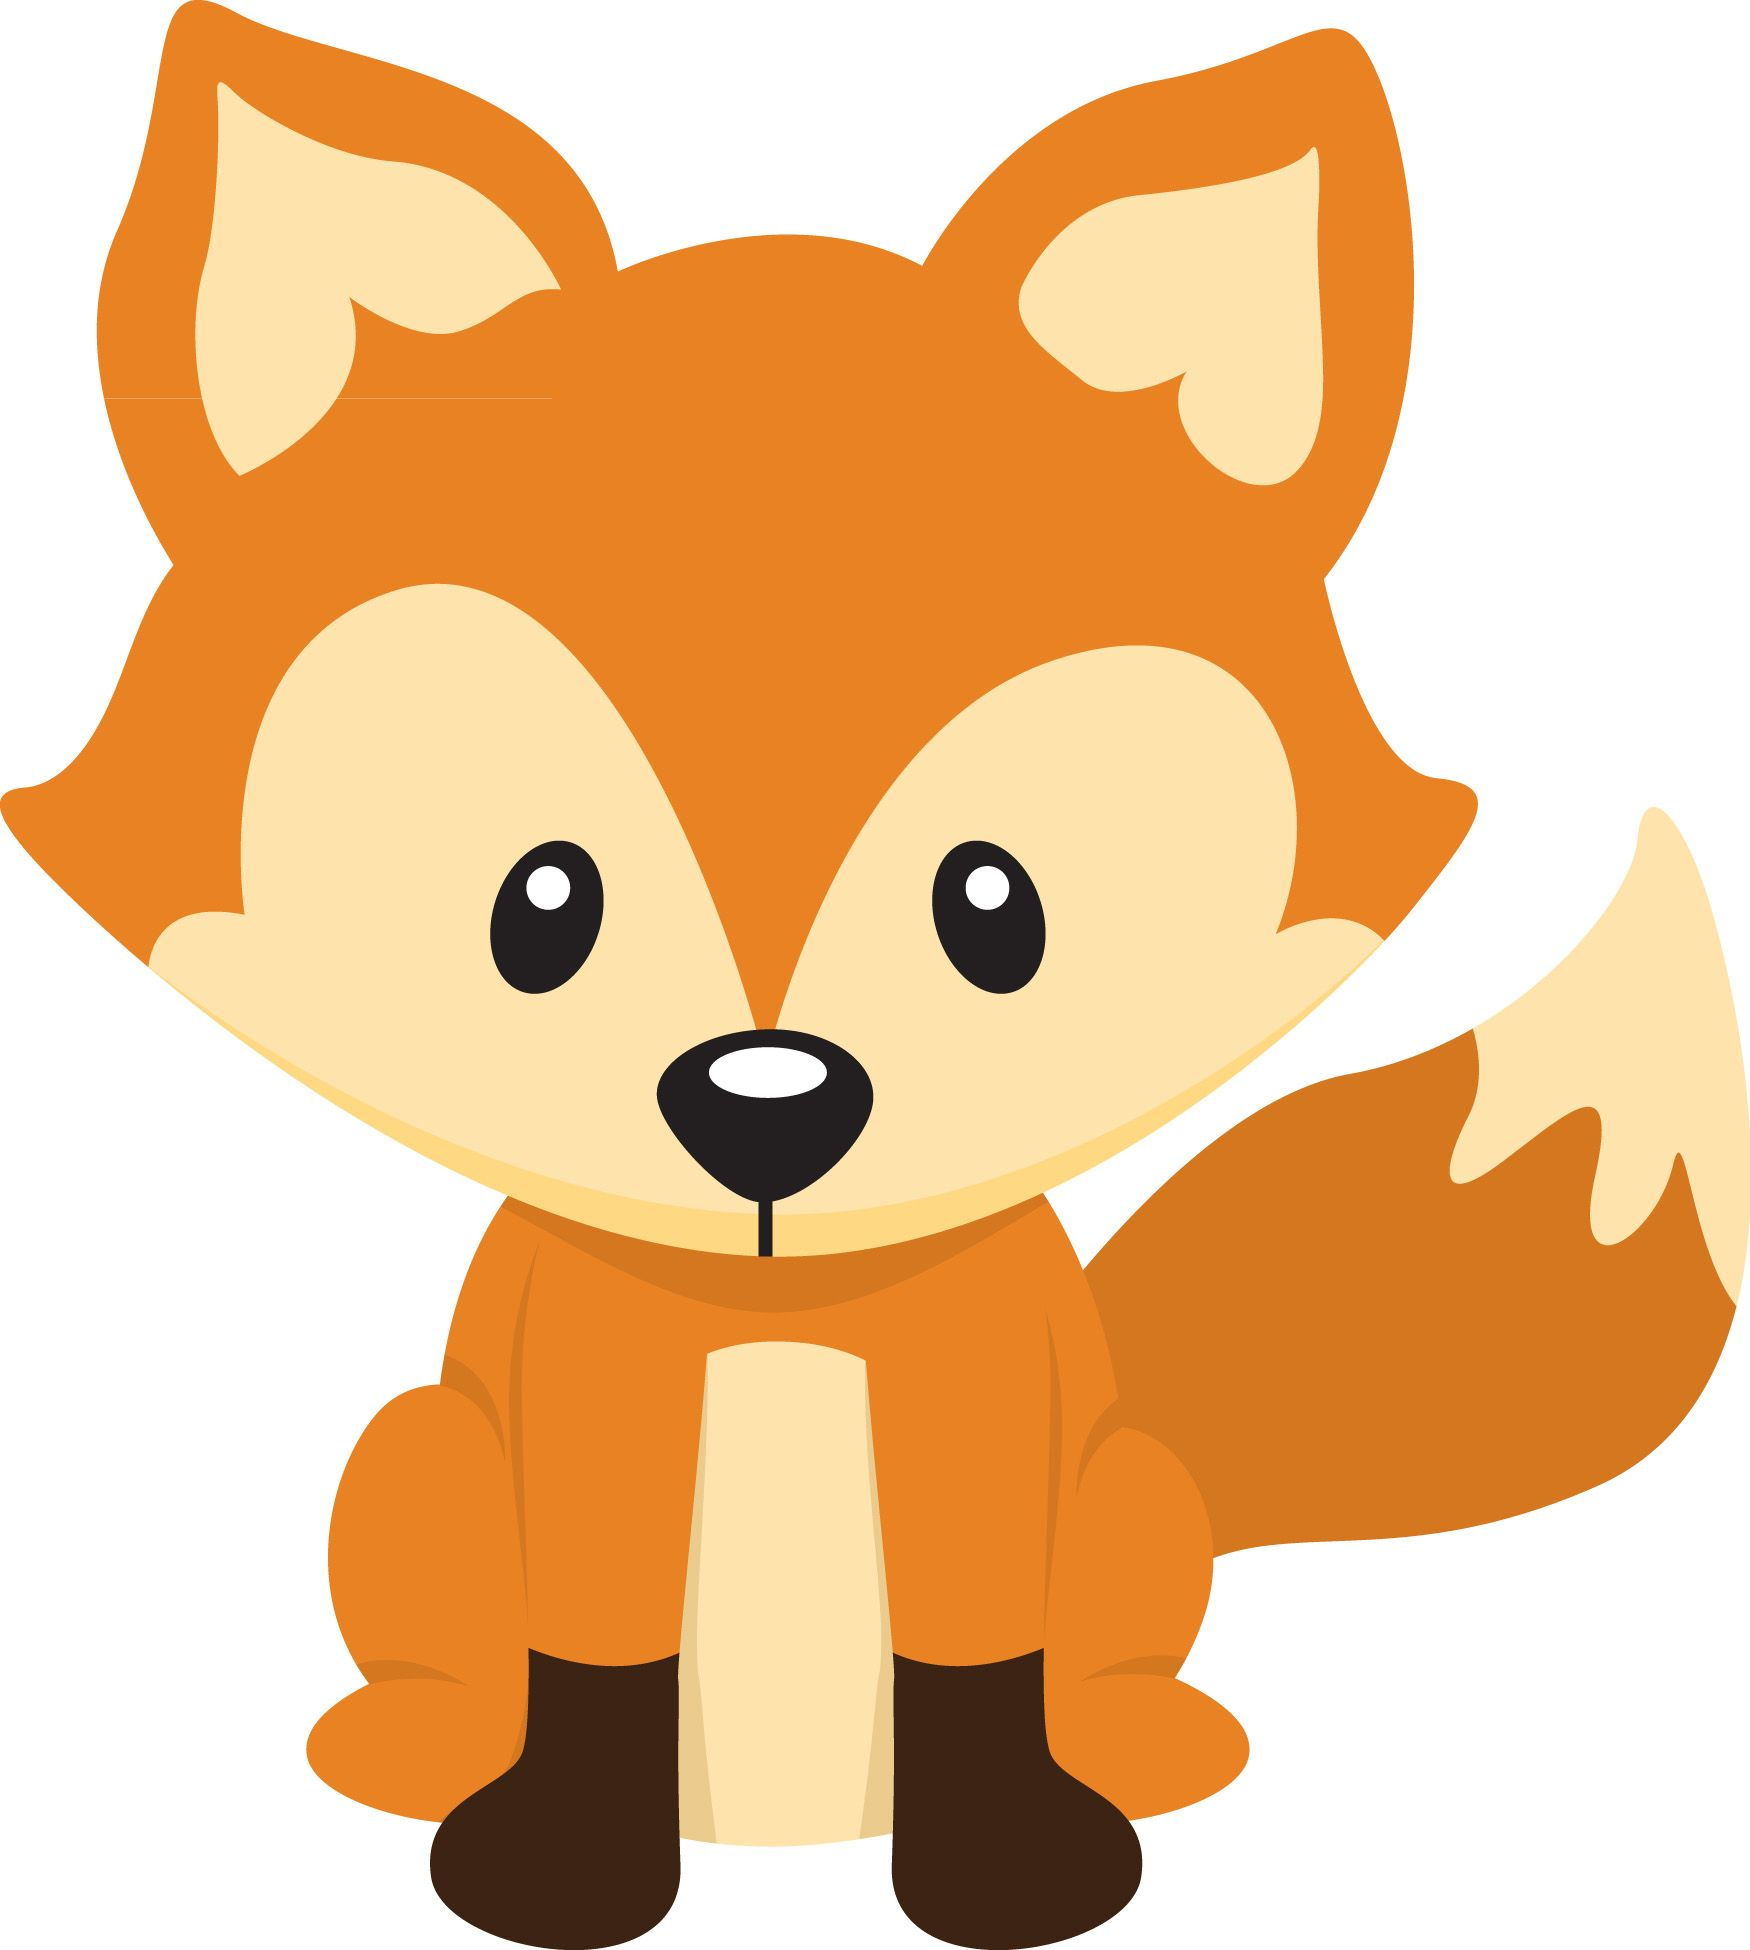 Fox Free Images At Clkercom V - Fox Clipart